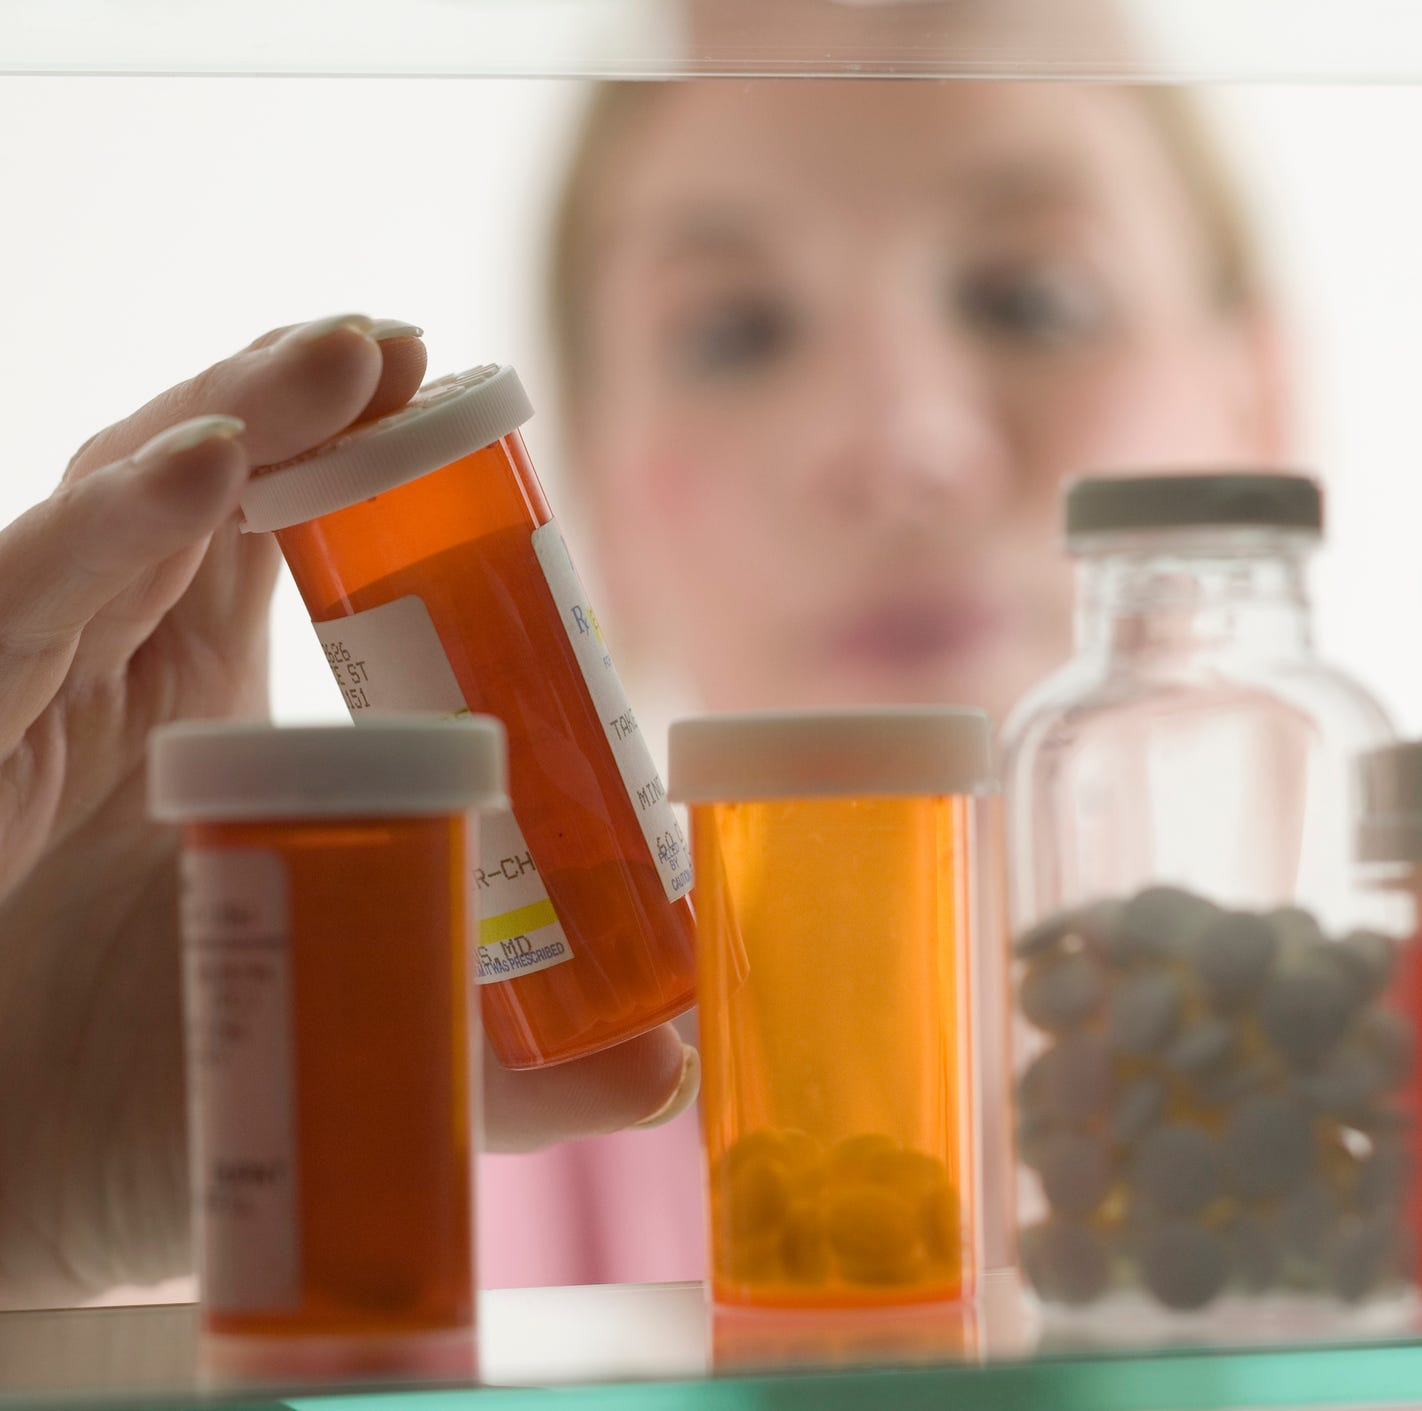 Clear your home of unwanted prescription medications at Salem area drug take-back events